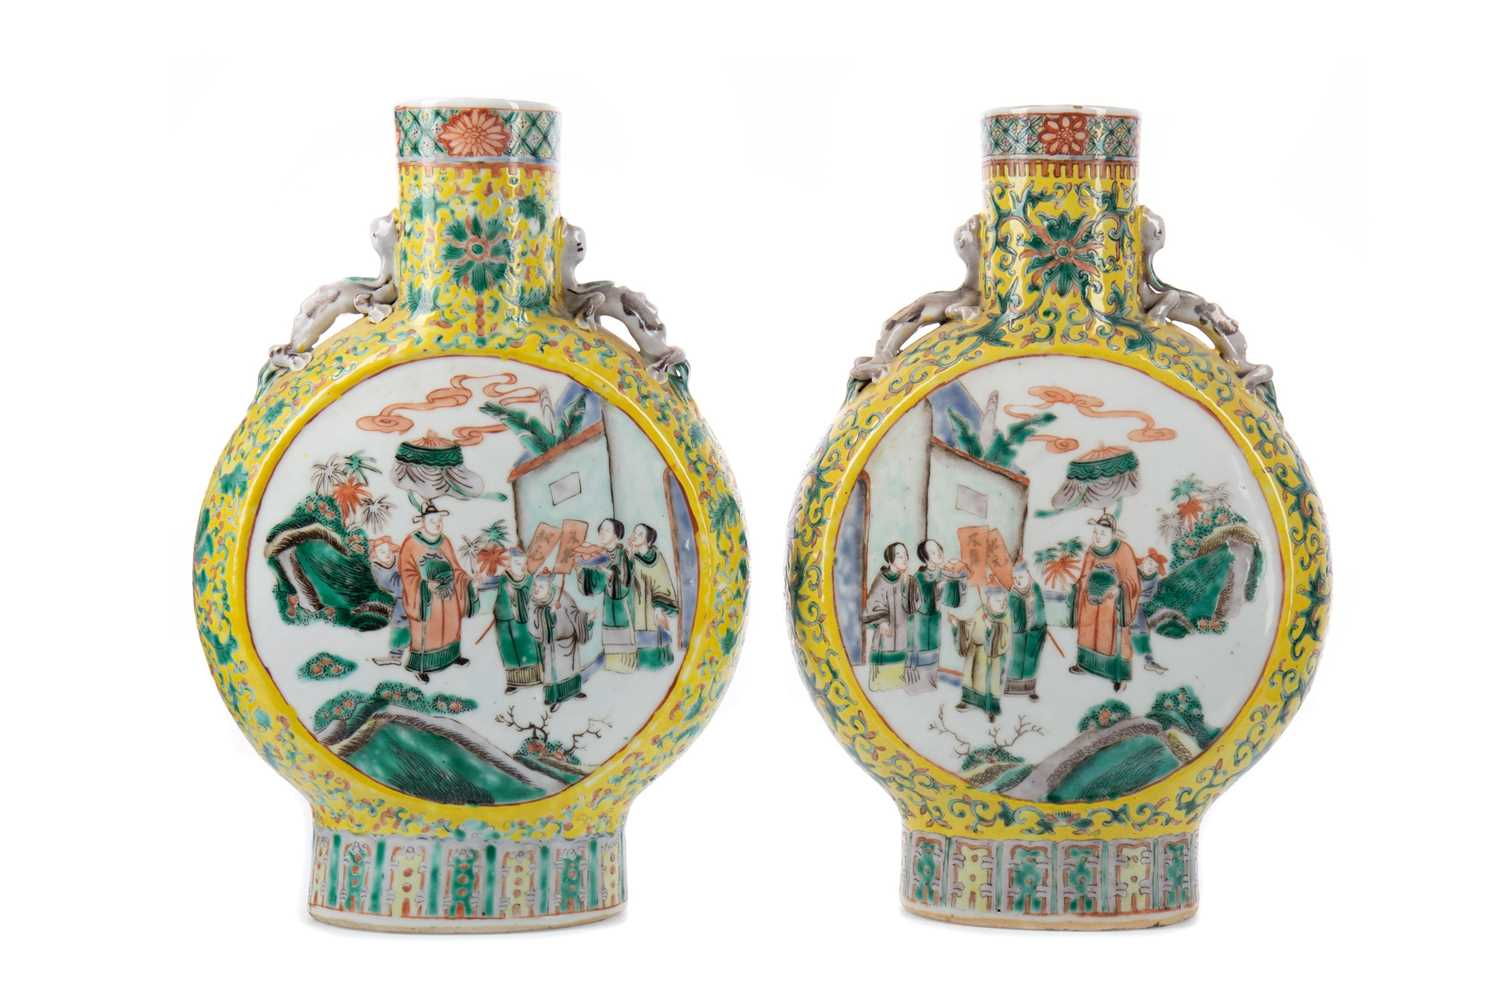 Lot 1648 - A PAIR OF 19TH CETURY CHINESE FAMILLE JAUNE MOON FLASK VASES